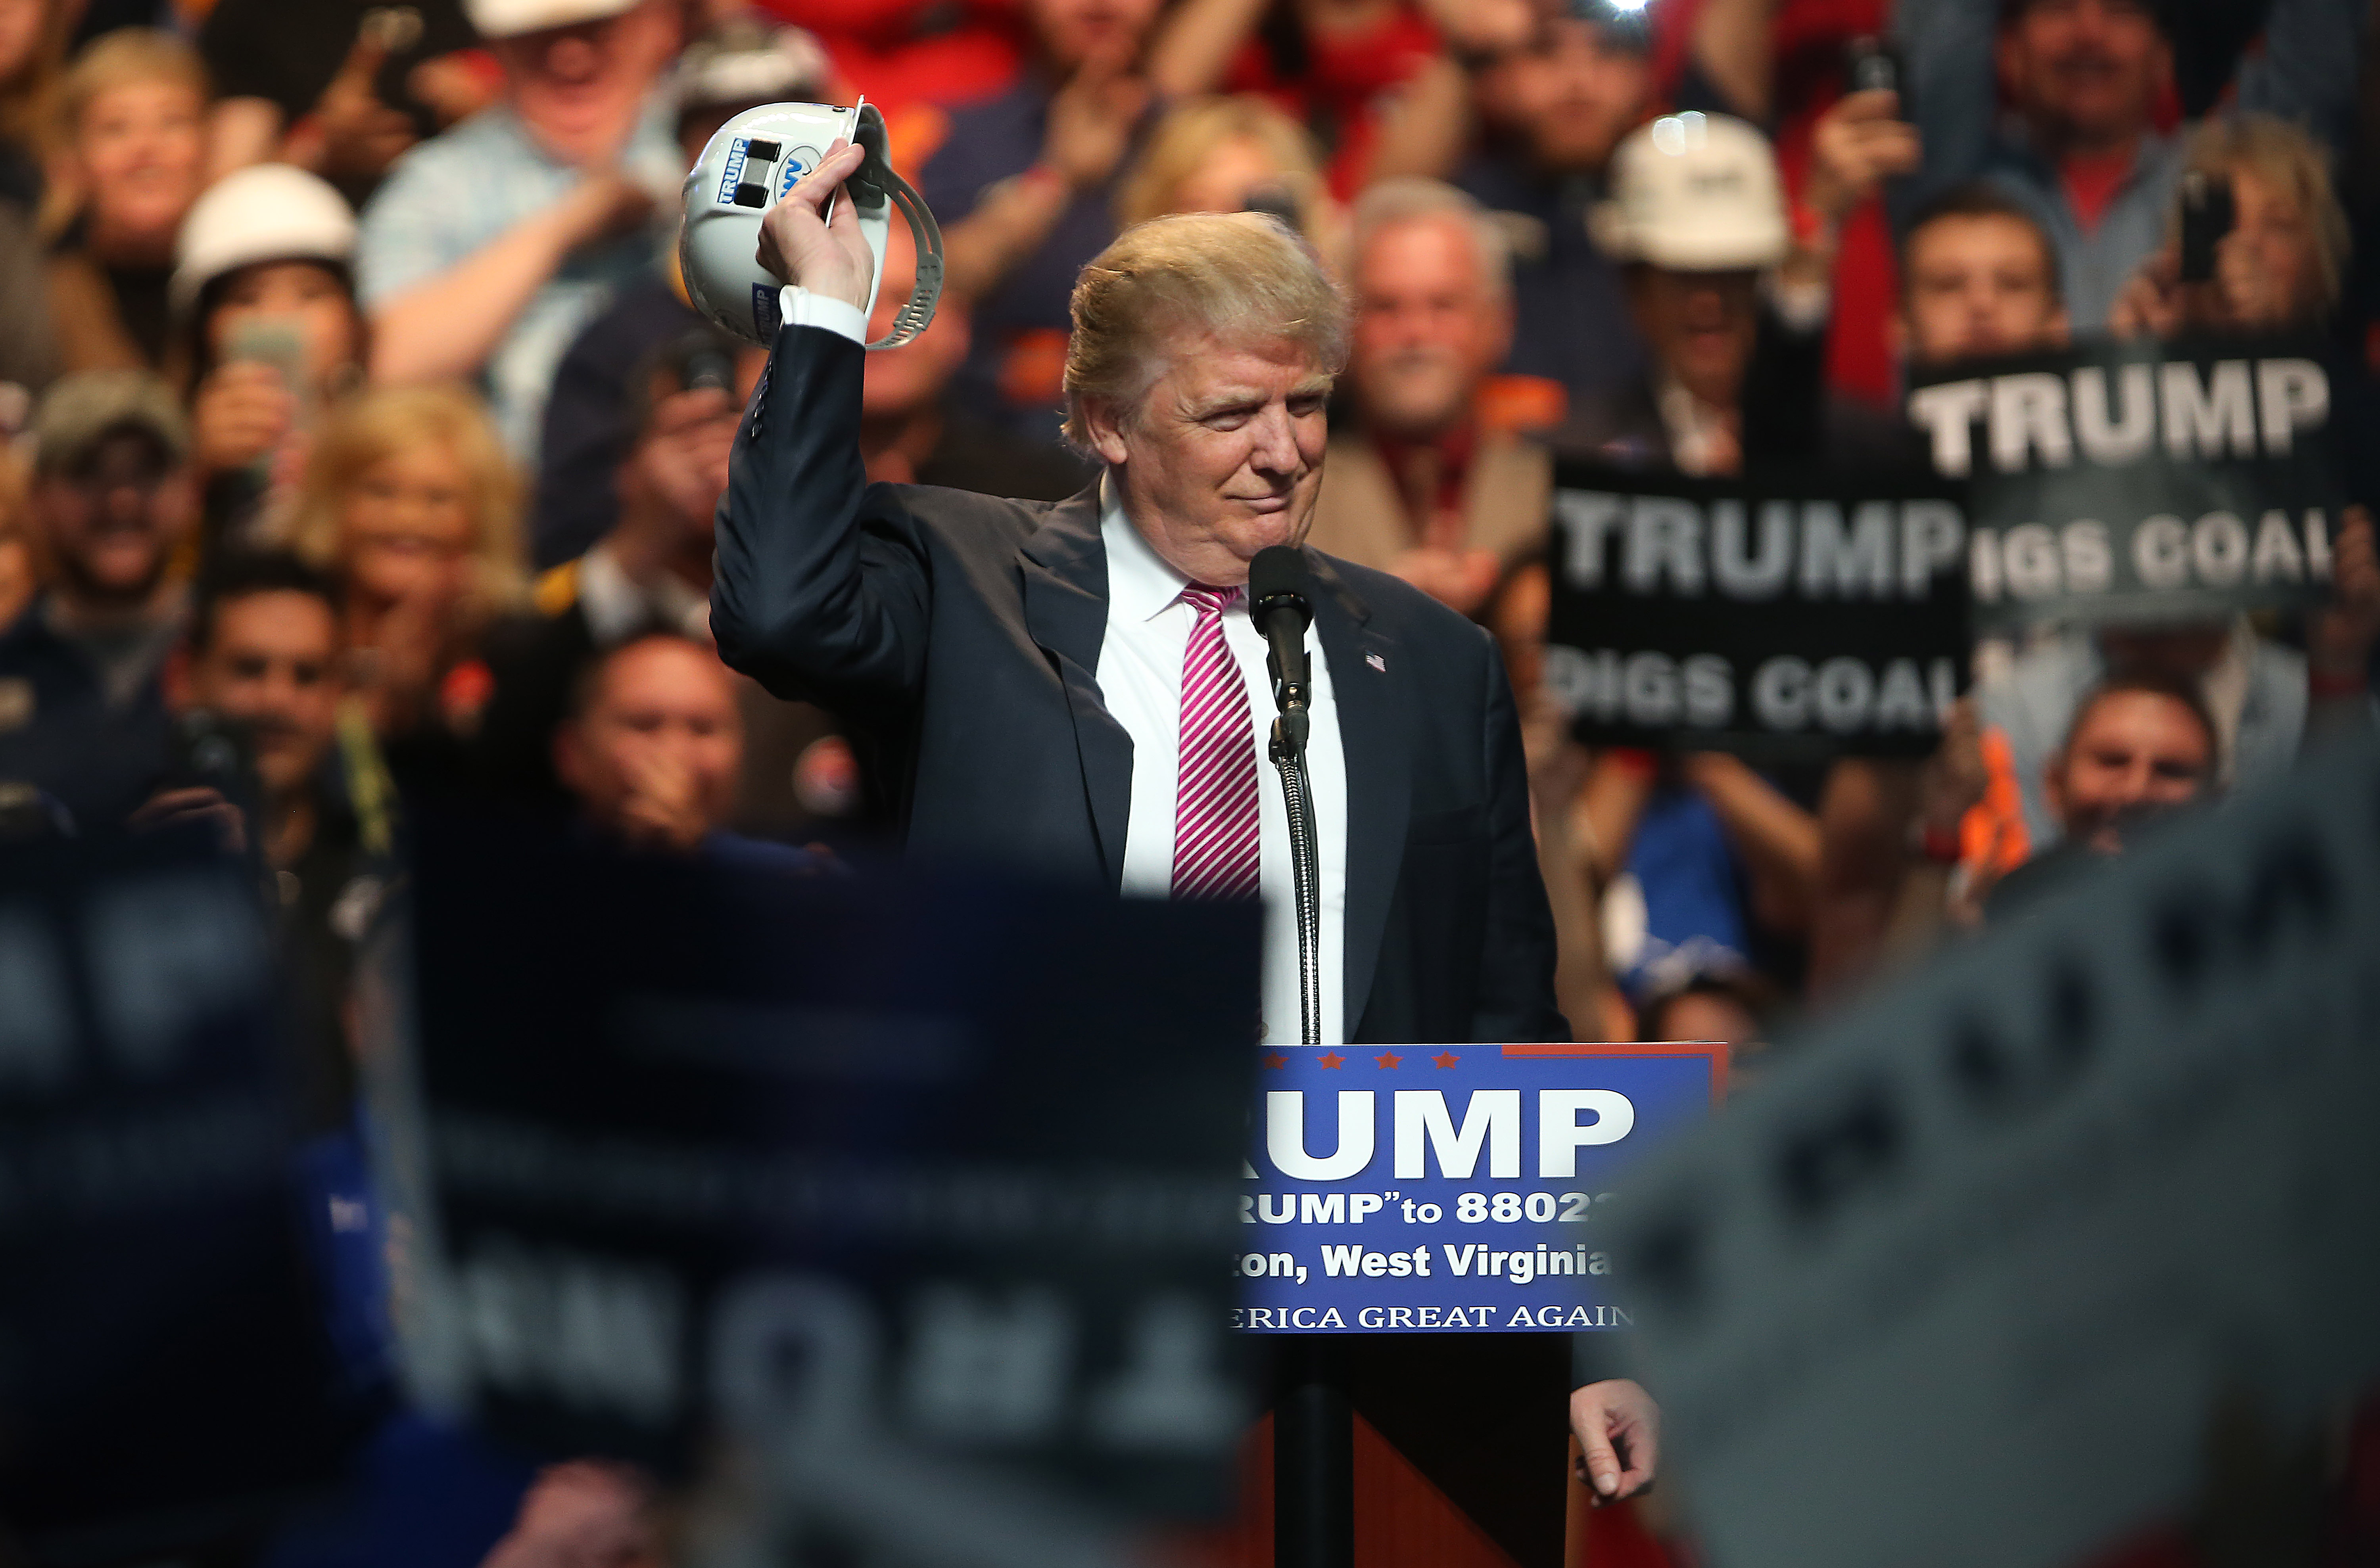 CHARLESTON, WV - MAY 05: Republican Presidential candidate Donald Trump shos off a hard hat during hie rally at the Charleston Civic Center on May 5, 2016 in Charleston, West Virginia. Trump became the Republican presumptive nominee following his landslide win in indiana on Tuesday.(Photo by Mark Lyons/Getty Images)